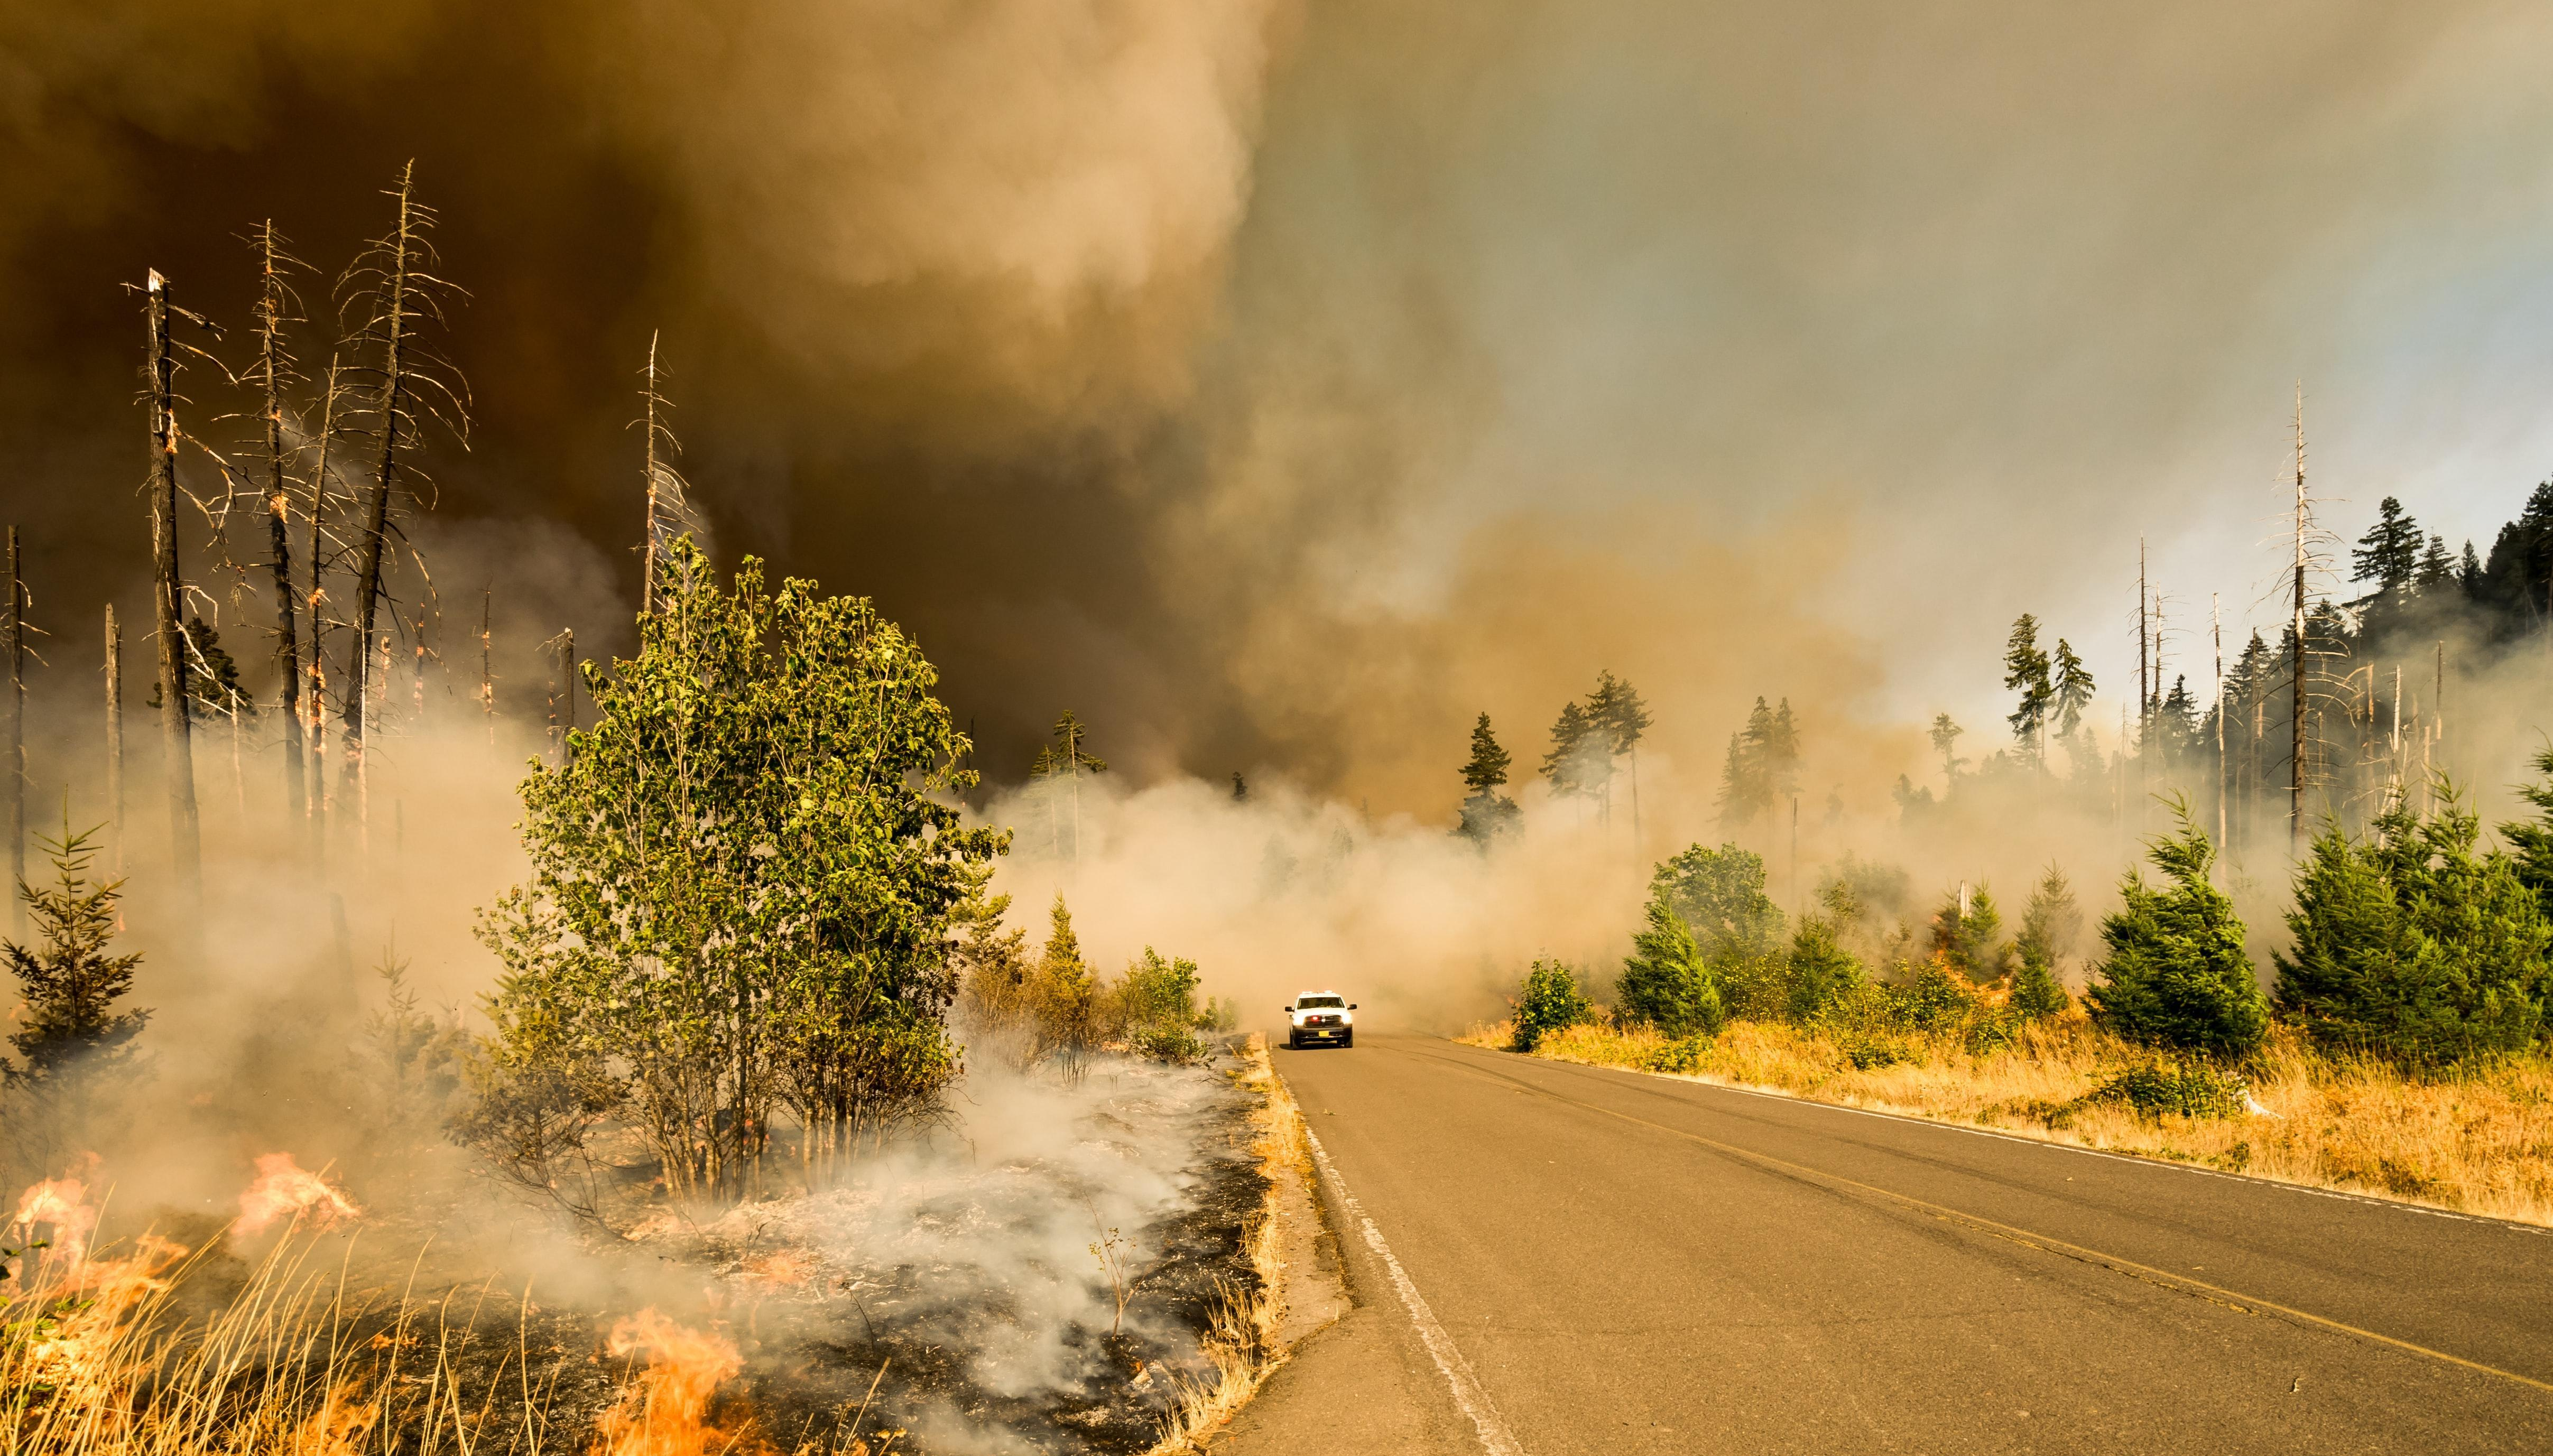 5 Best Air Purifiers for Wildfire Smoke in 2021